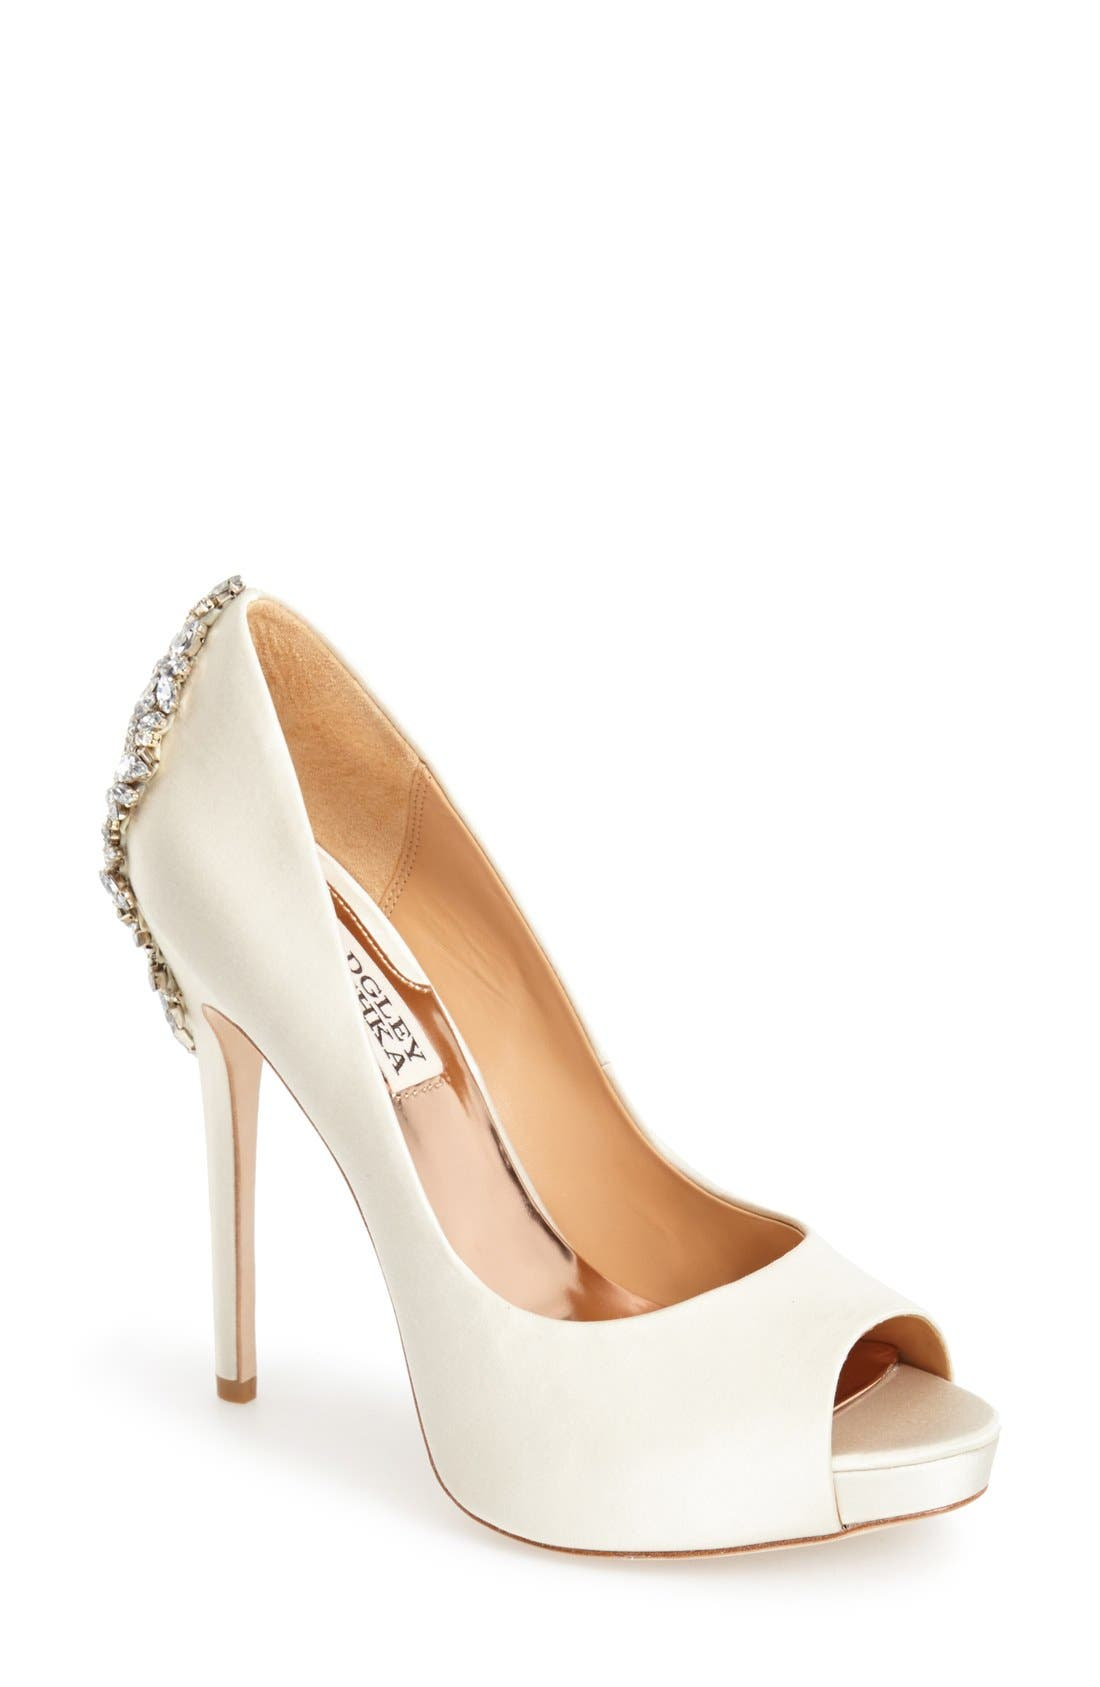 BADGLEY MISCHKA COLLECTION, Badgley Mischka 'Kiara' Crystal Back Open Toe Pump, Main thumbnail 1, color, IVORY SATN